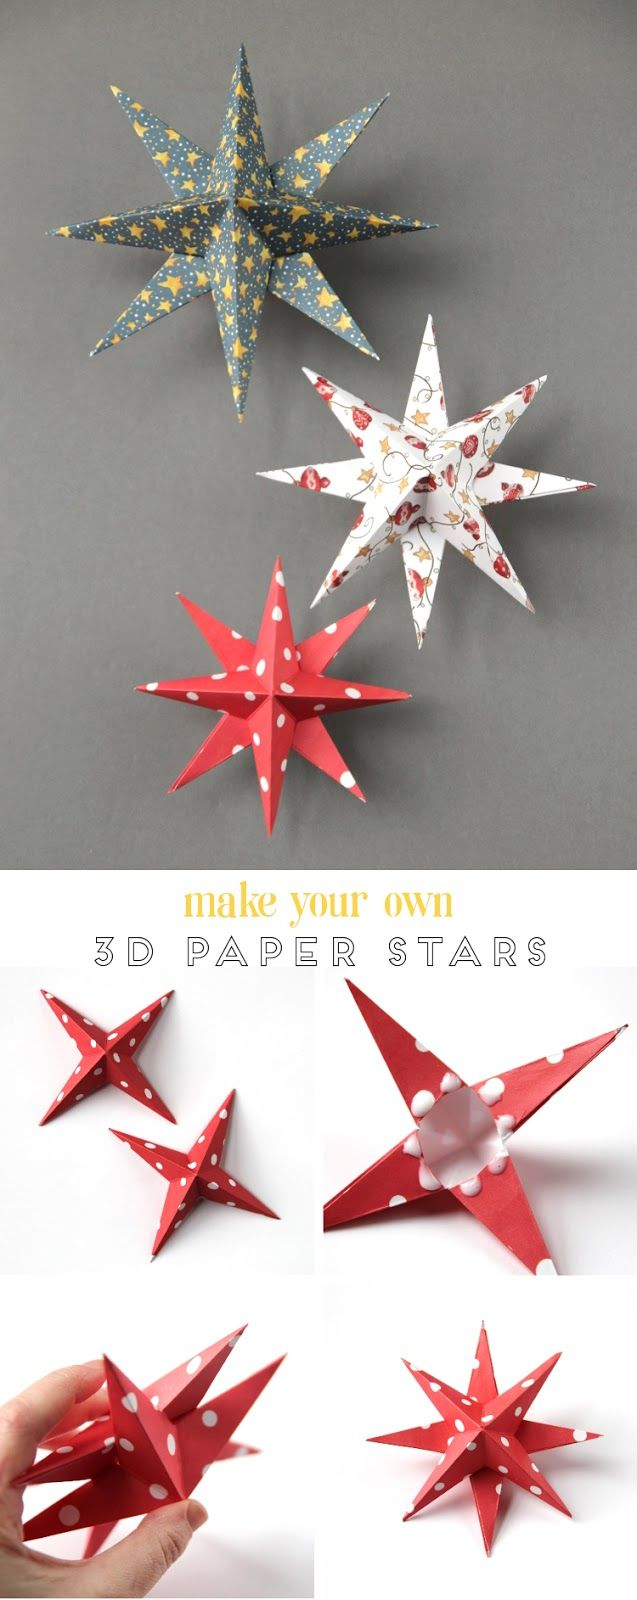 Diy 3d Paper Star Christmas Decorations With Images Paper Decorations Diy Diy Christmas Star Diy Christmas Paper